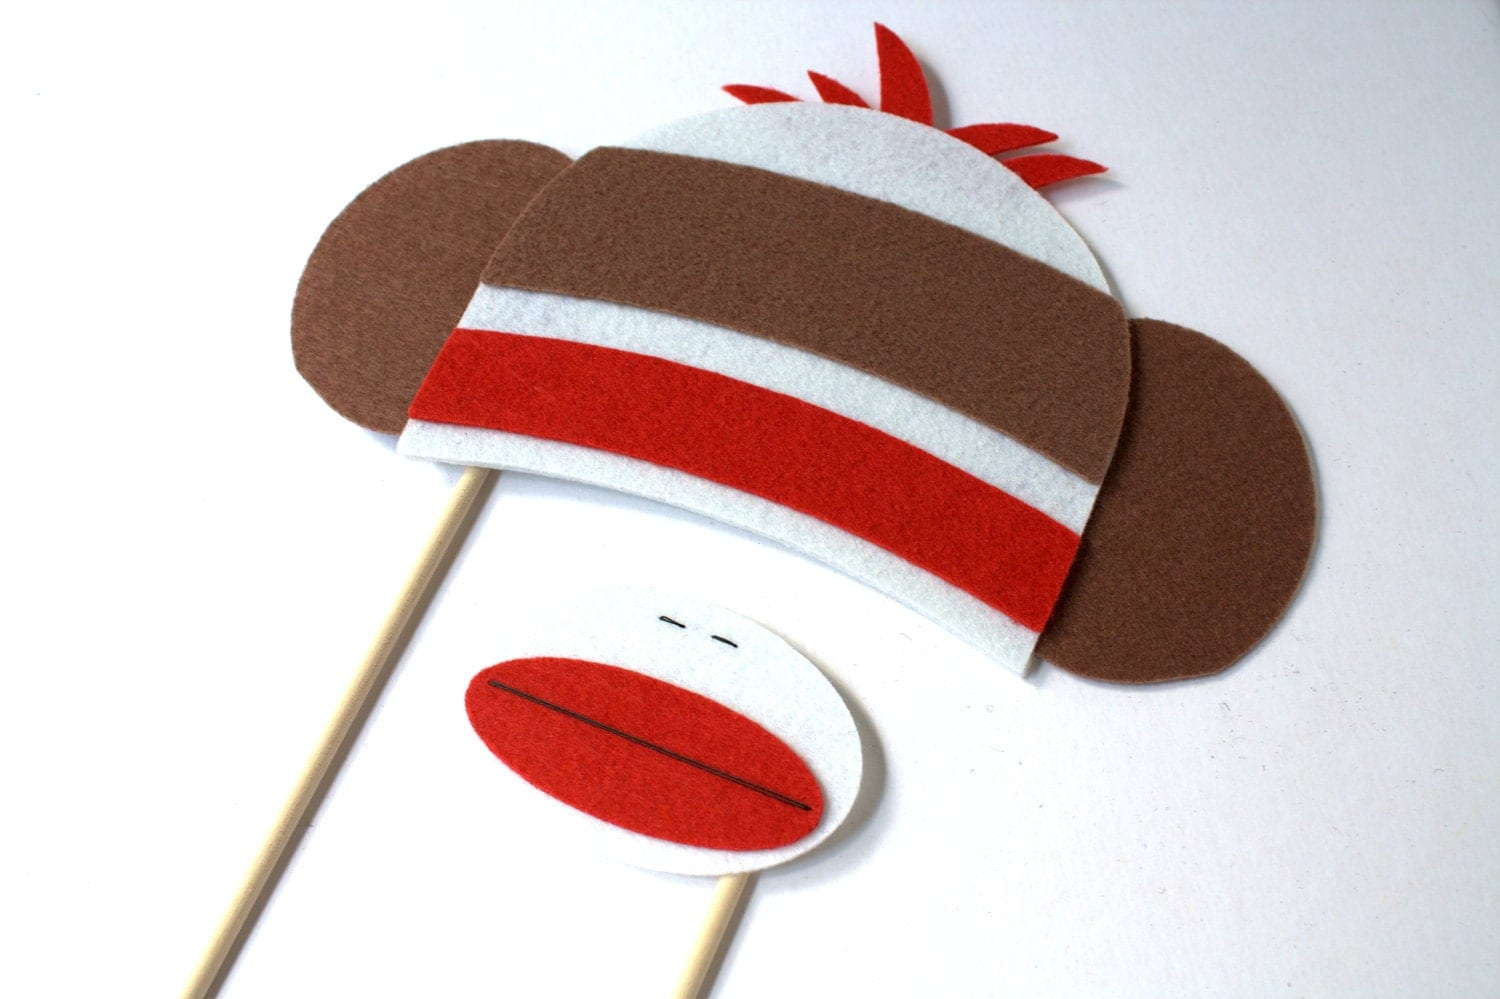 Photo Booth Props. Wedding Photo Props. Sock Monkey. Photo Props. Mustache on a Stick. Props on a Stick - The Sock Monkey Envy Maro Kit